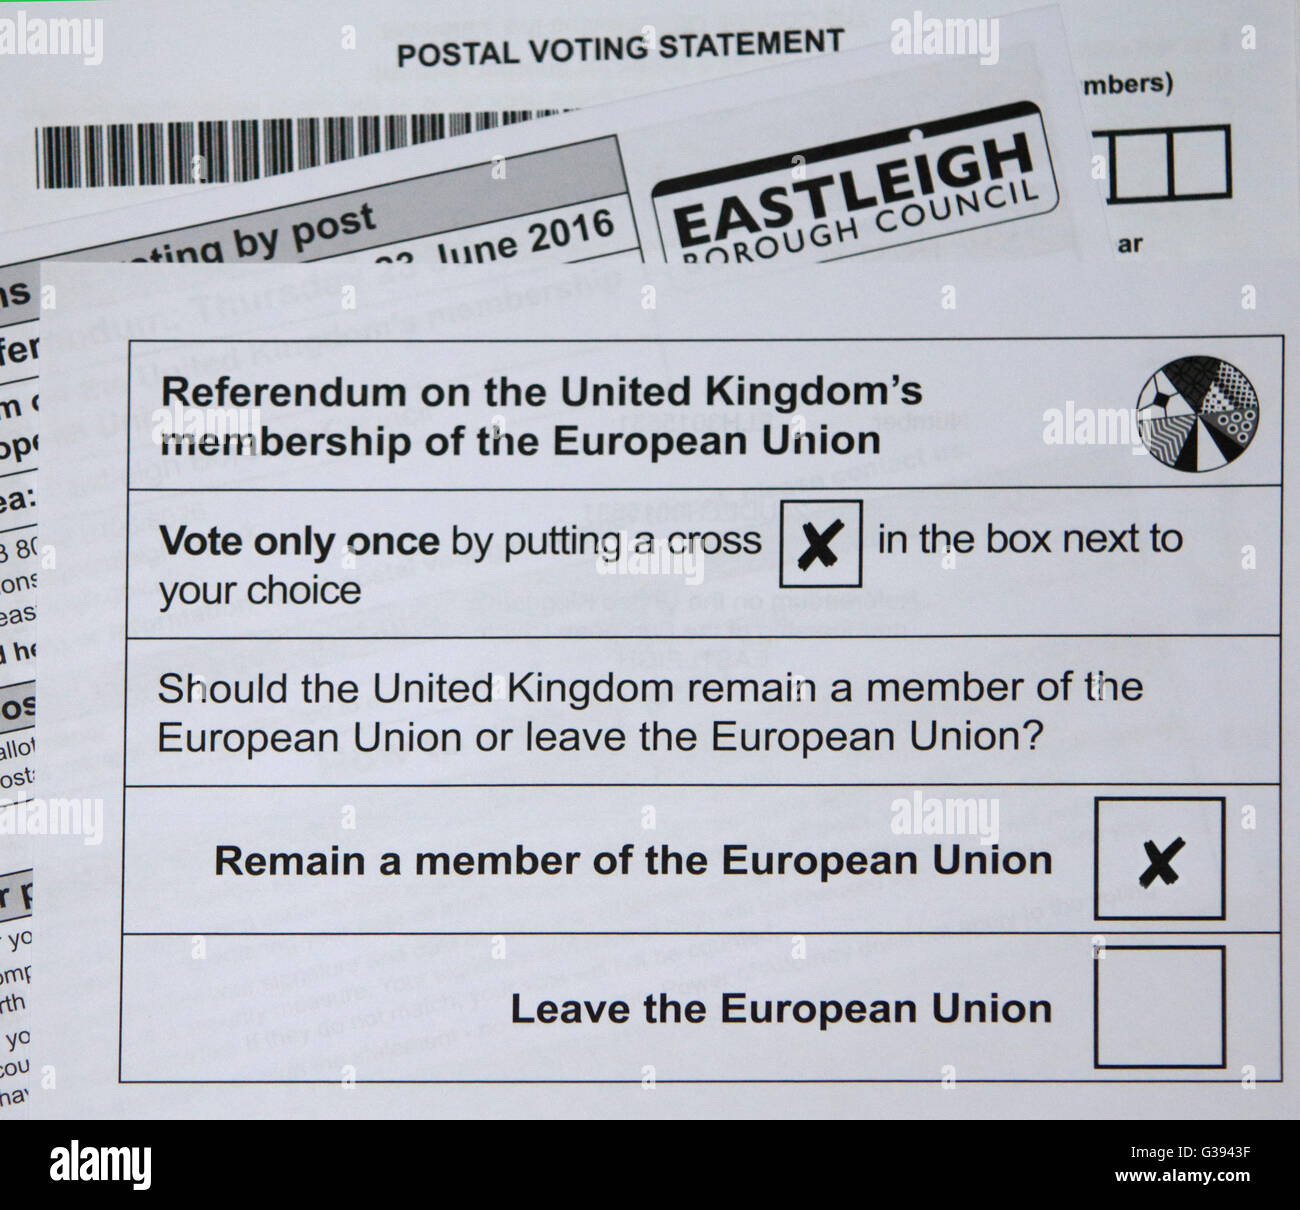 2016 UK European Union Referendum Postal Vote Ballot Paper - Stock Image